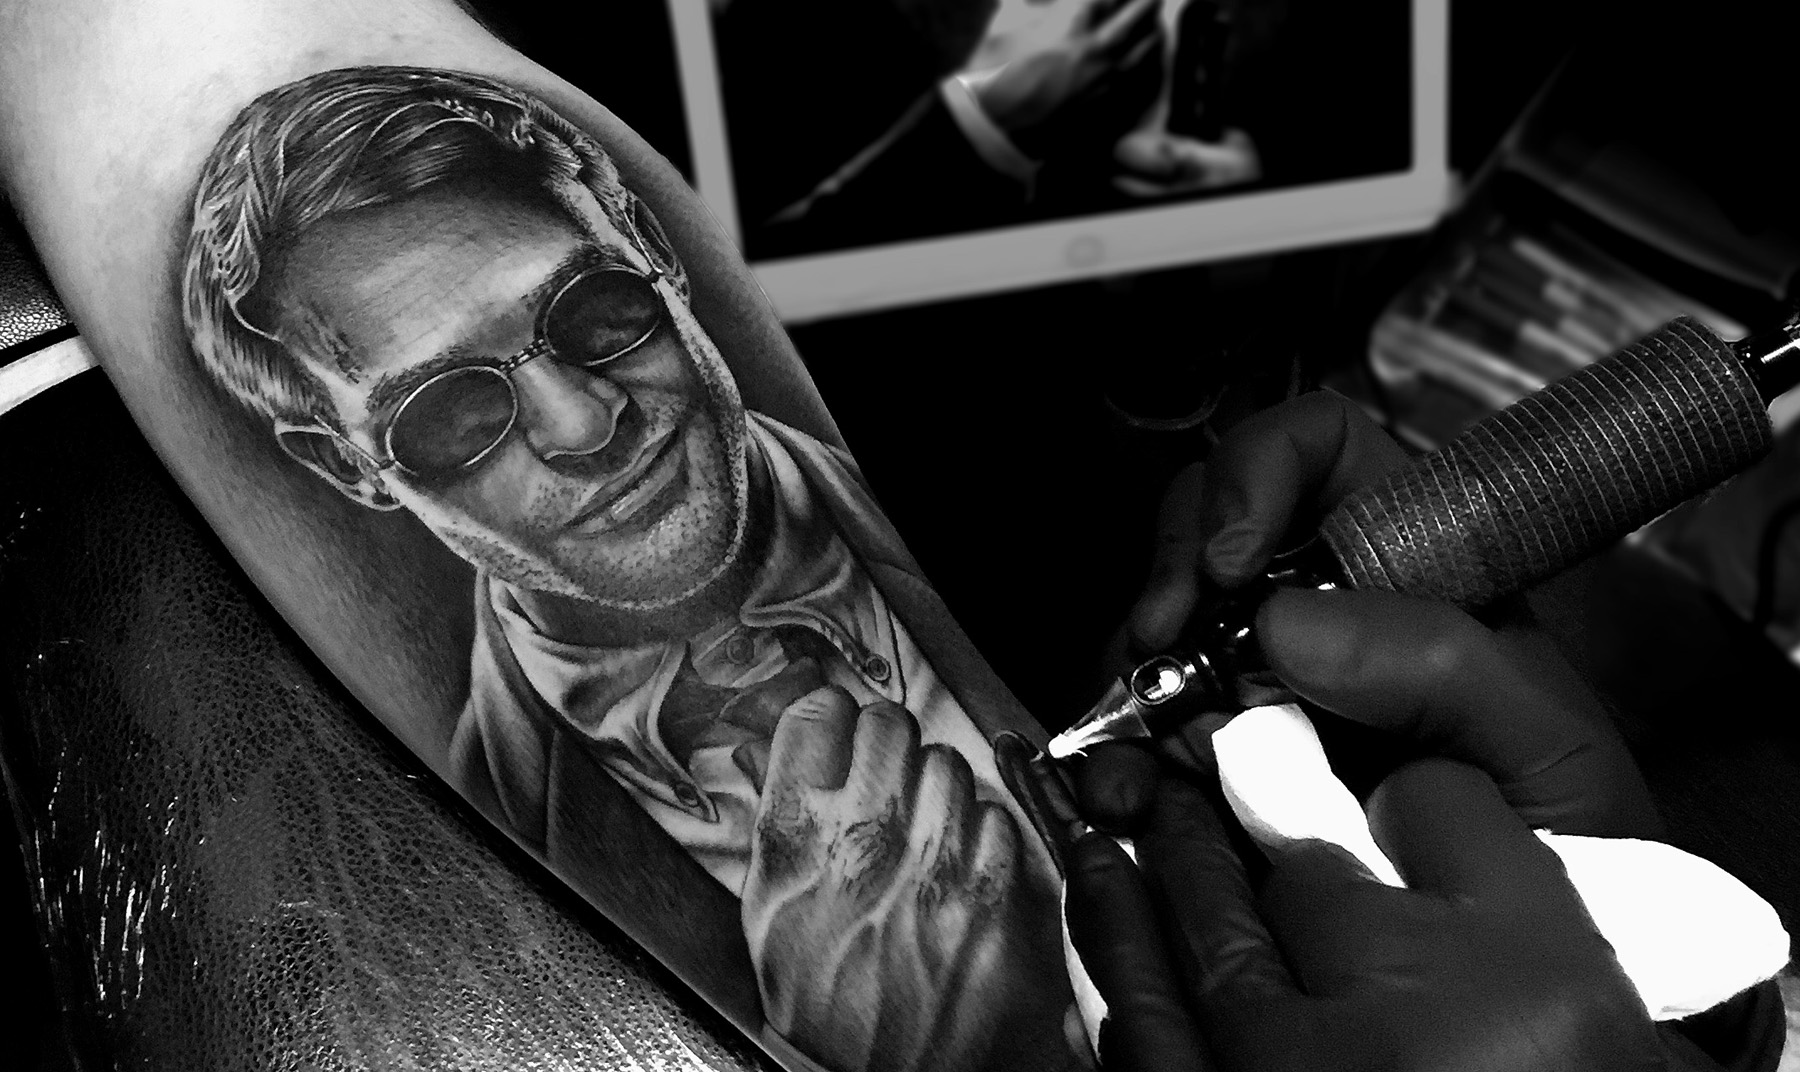 33ed58895 I'm a Tattoo Artist working from Black Friars Tattoo House in Carlisle,  England and I specialise mostly in black and grey realism tattoos.